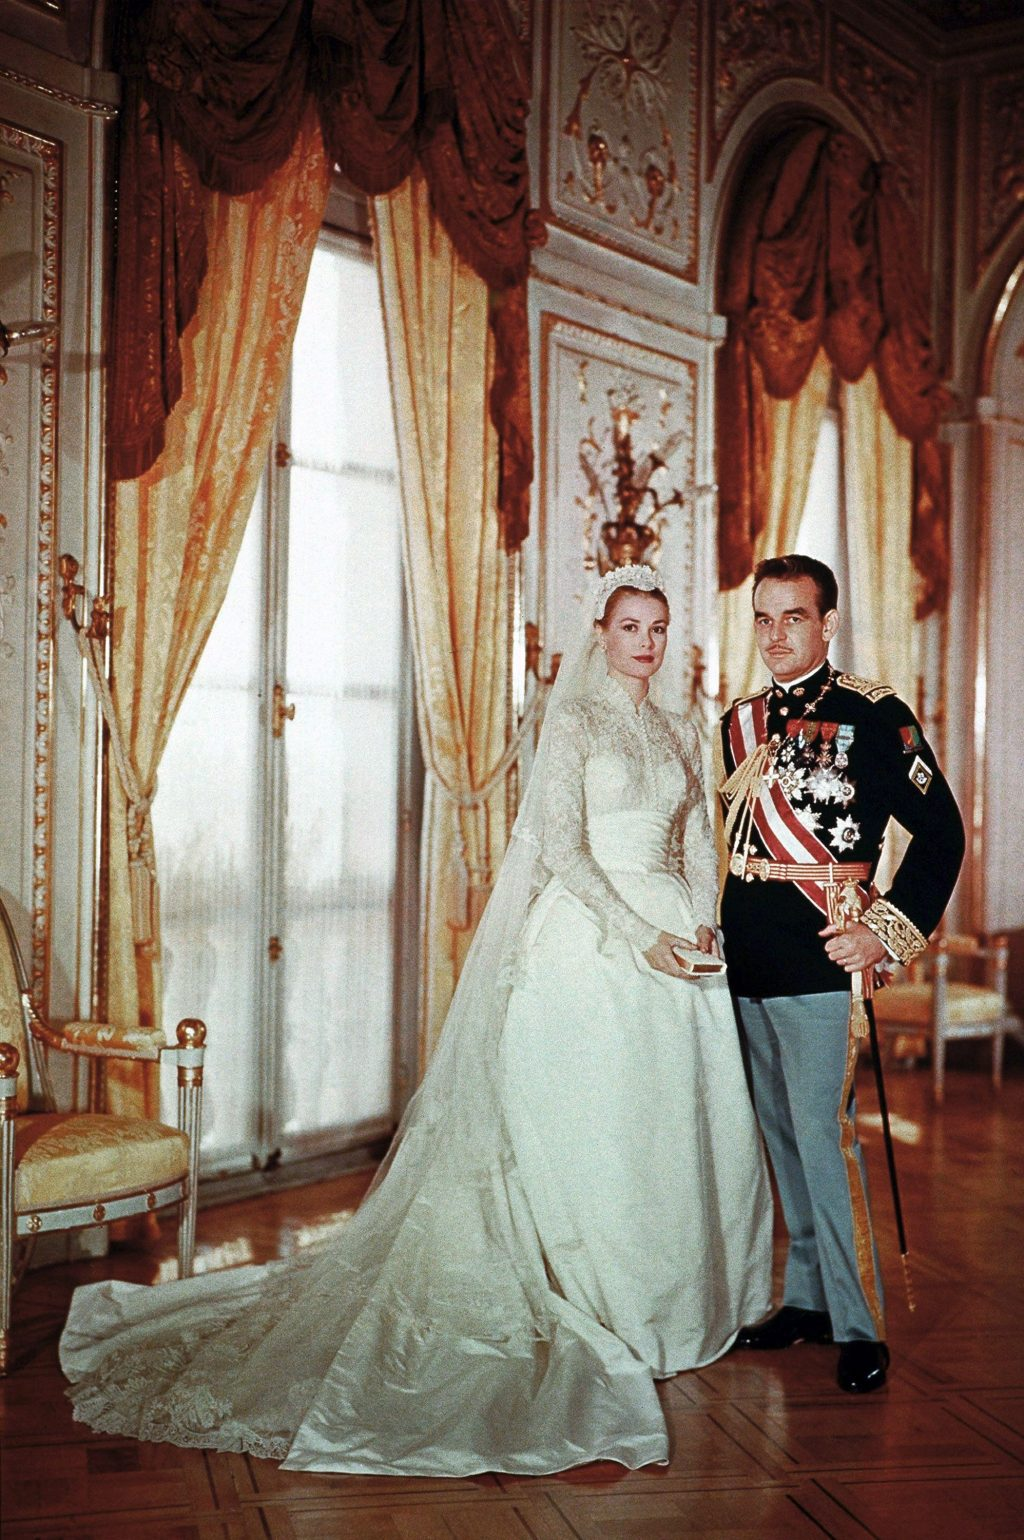 The 25 Most Iconic Wedding Dresses of All Time